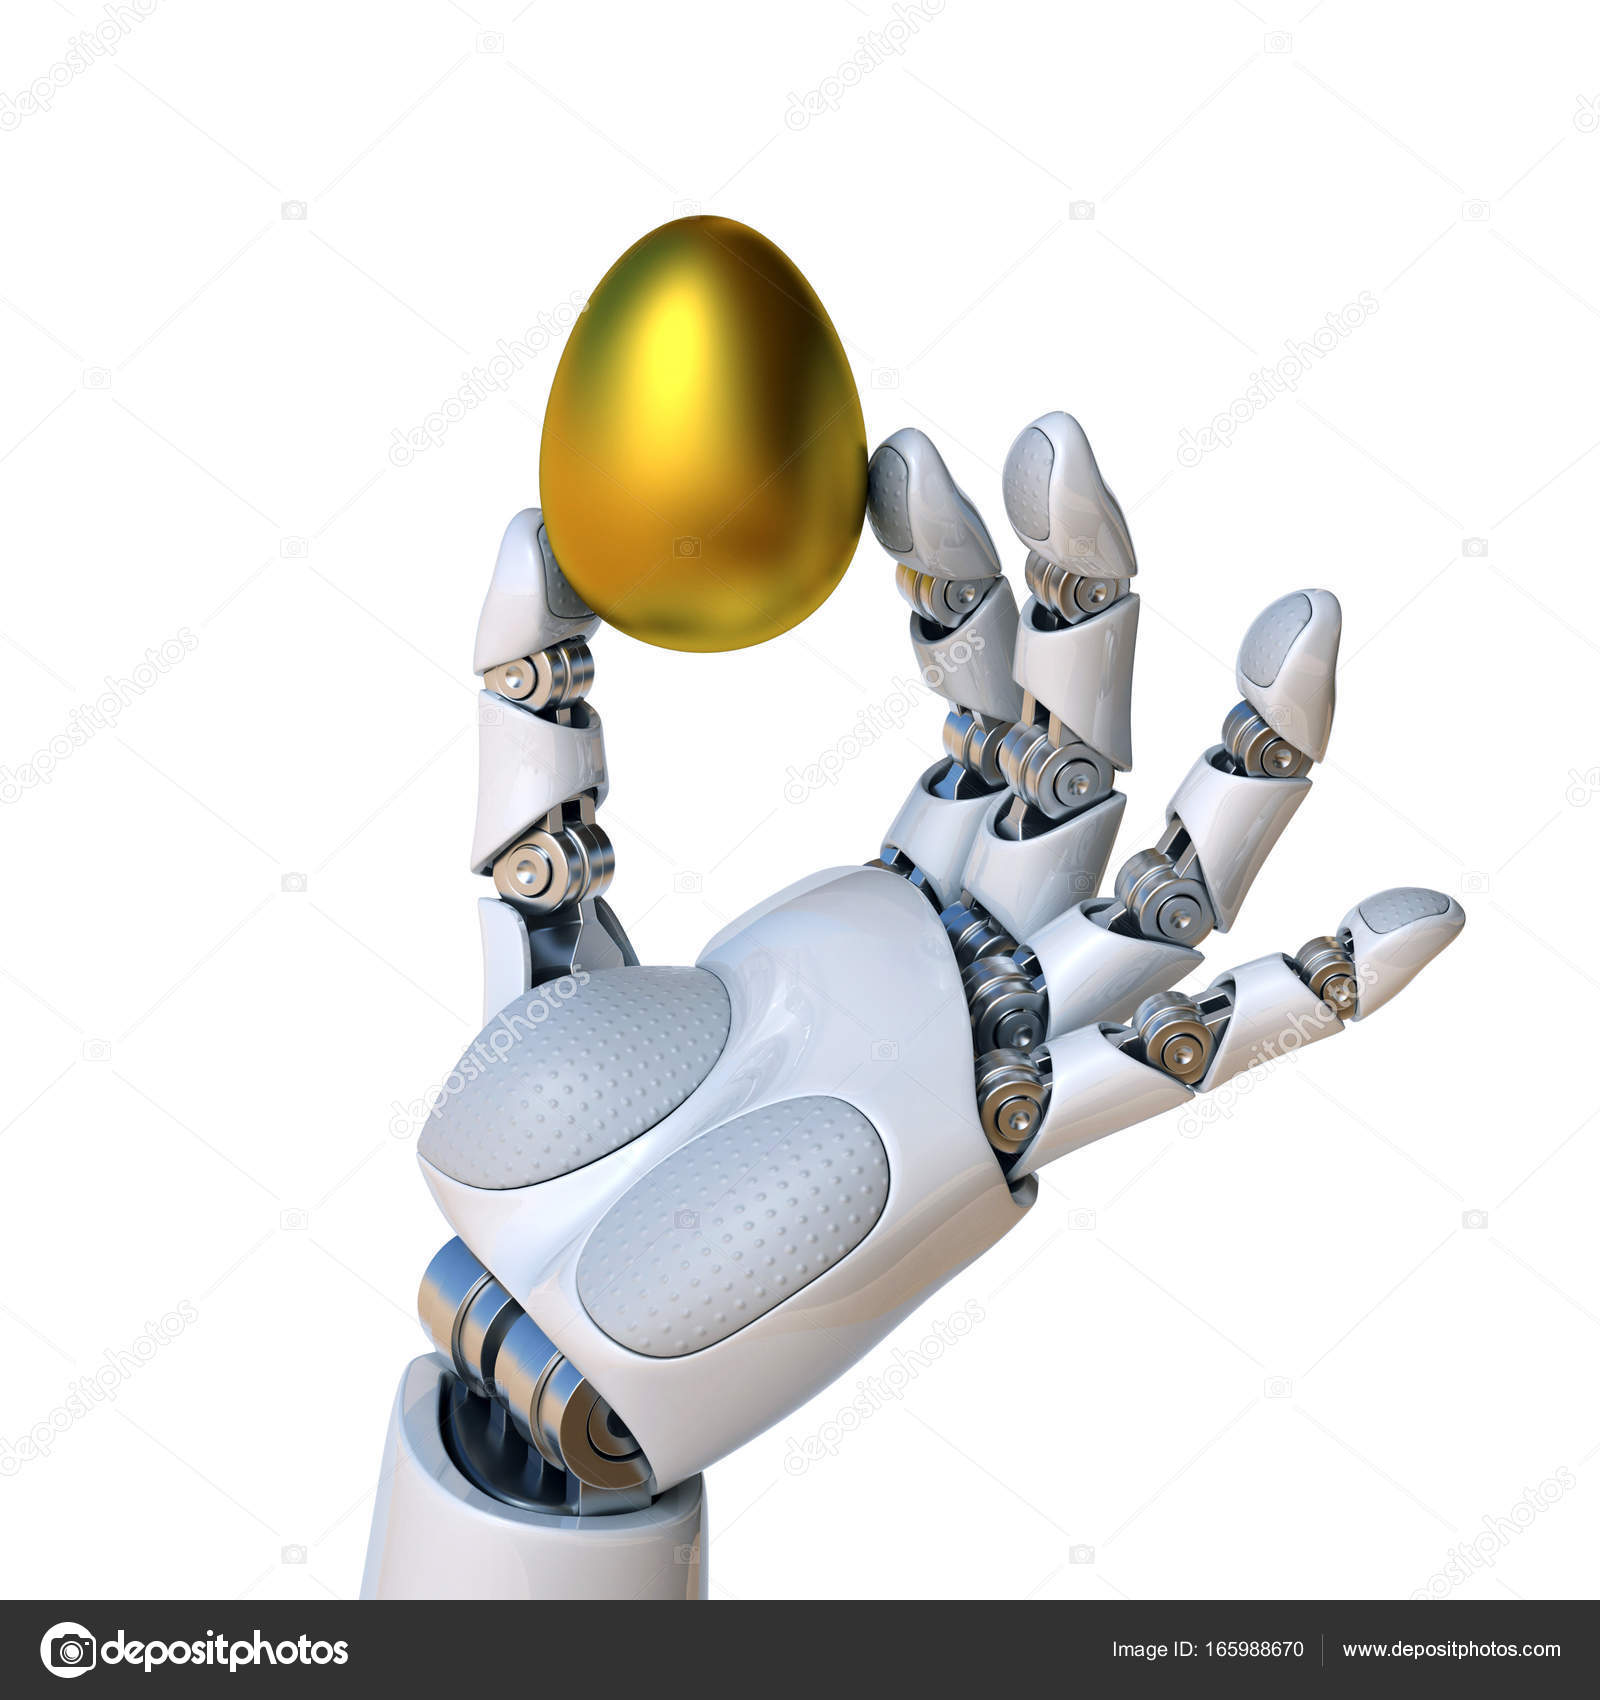 Robot Hand Holding Golden Egg Stock Photo Koya979 165988670